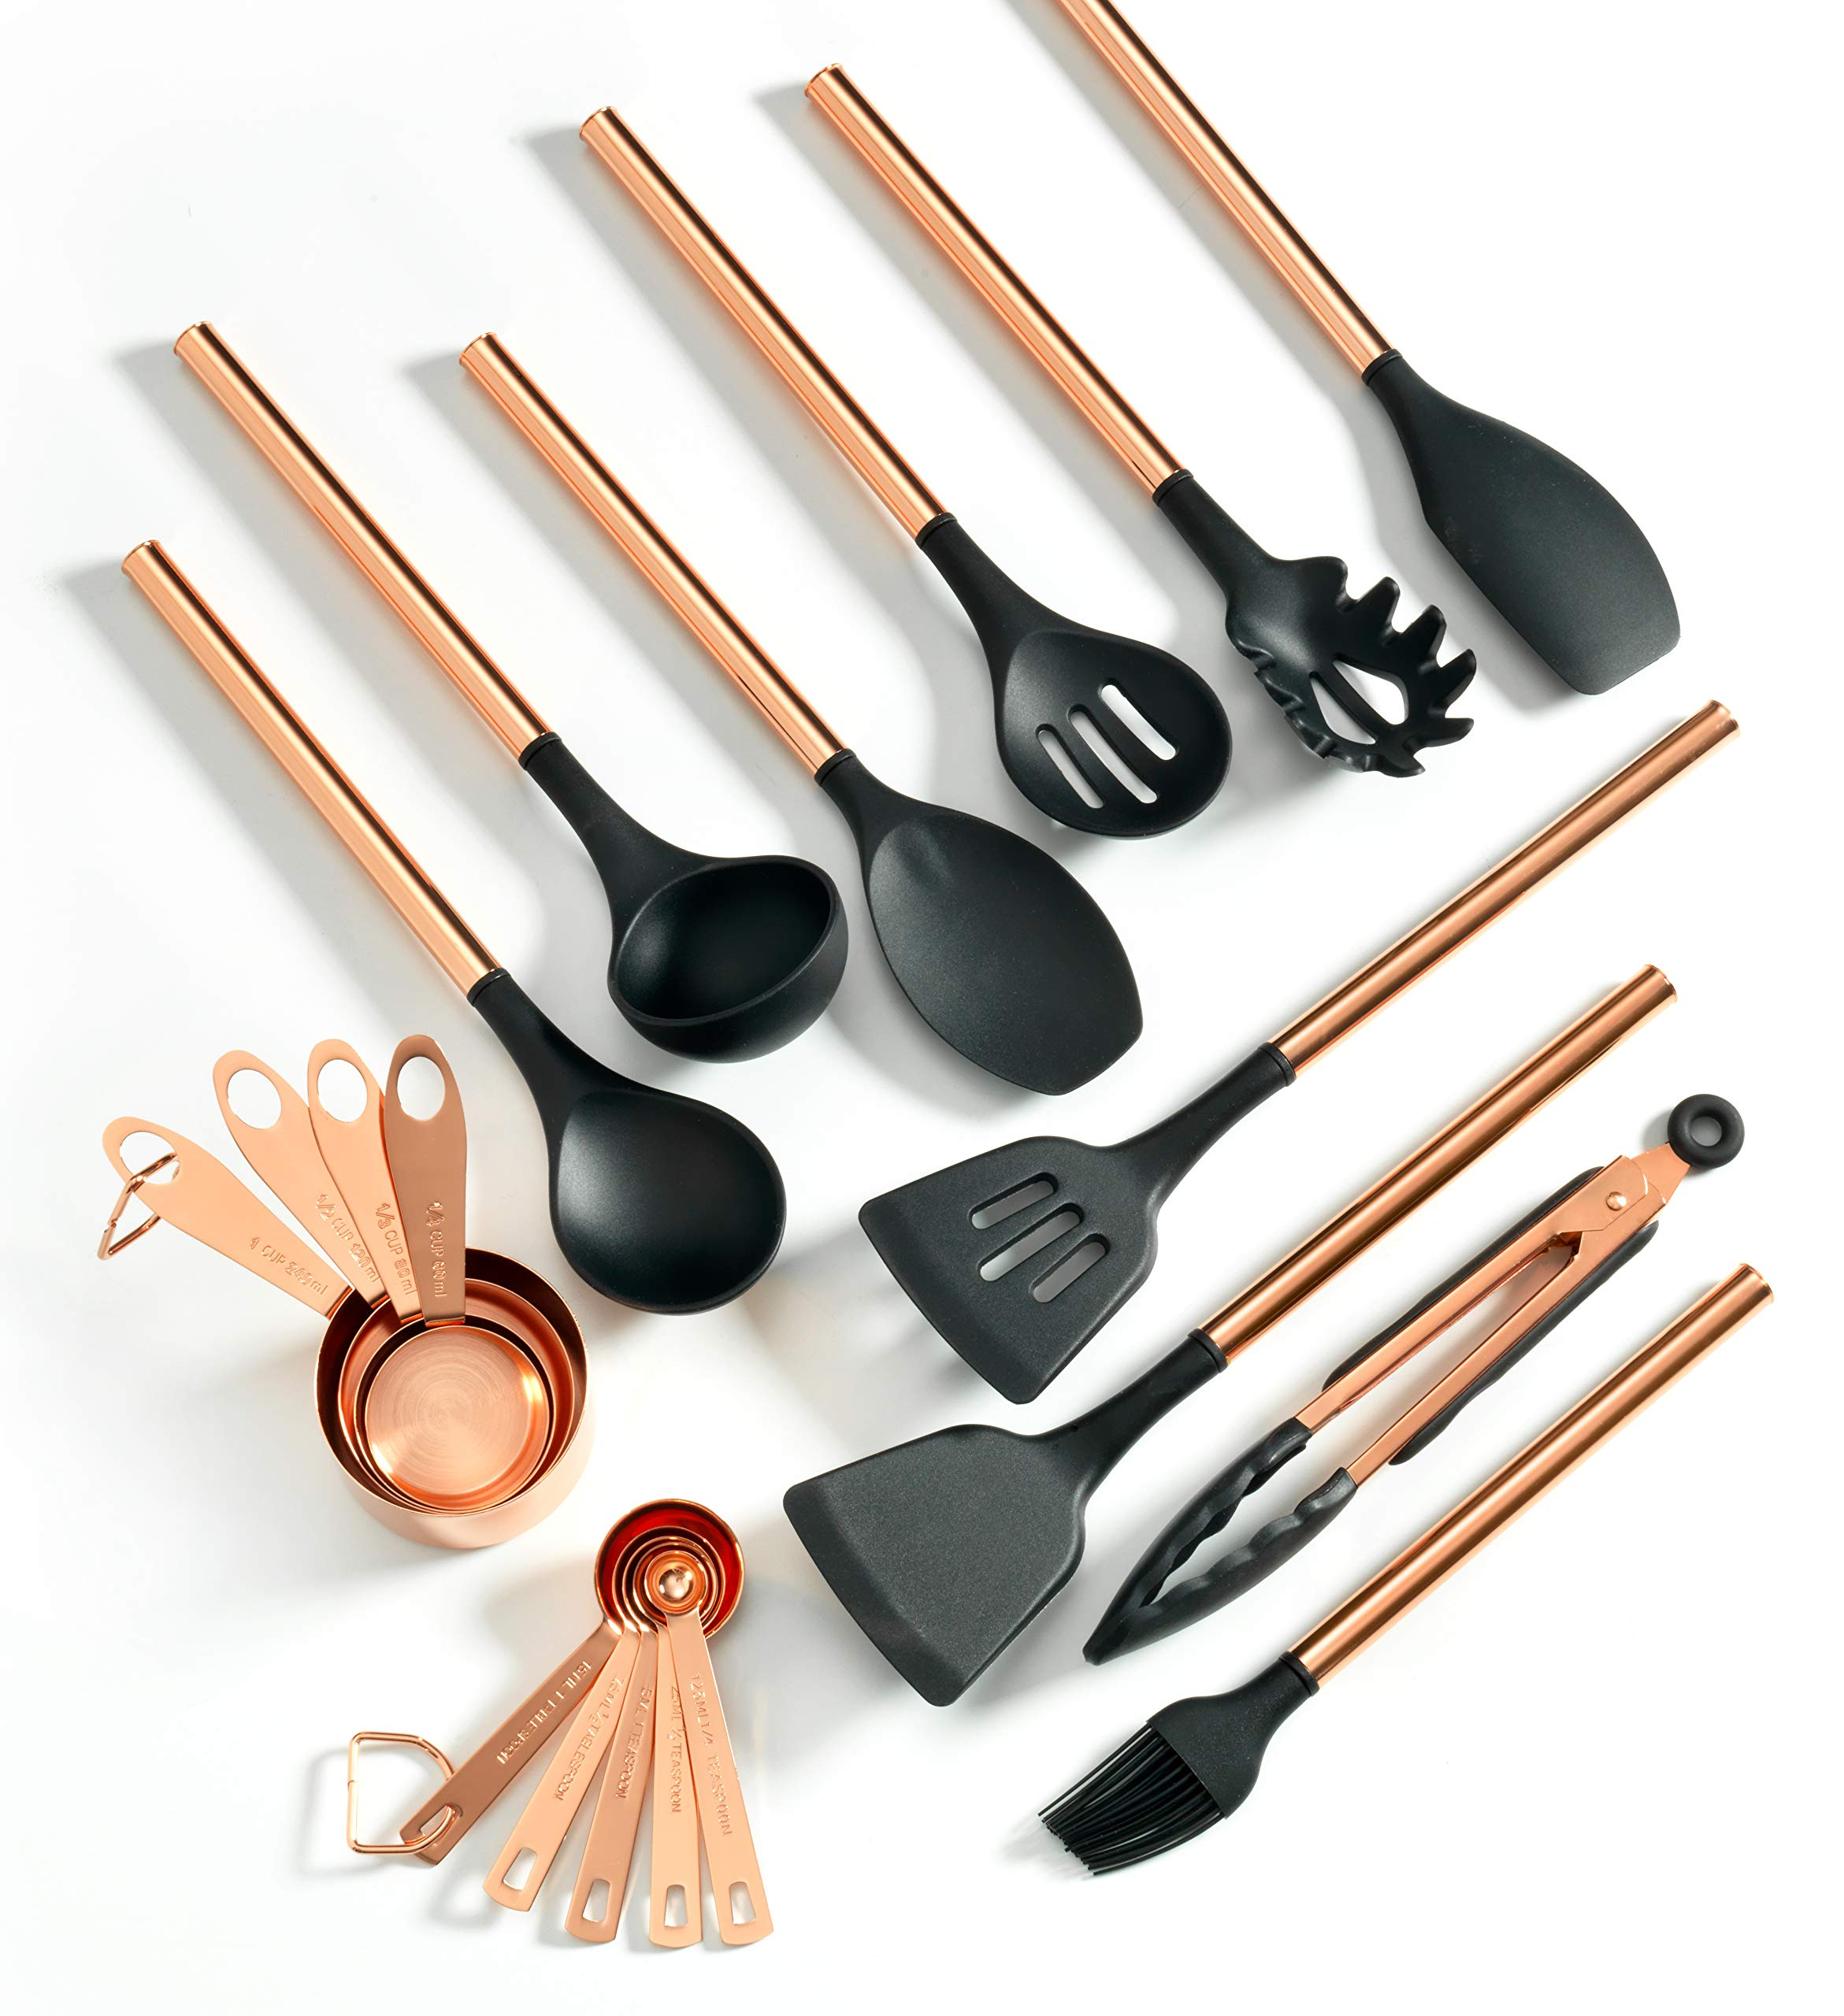 West Minster Copper Plated Stainless Steel Kitchen Utensil Set | 19 Kitchen Gadgets | Silicone Spatula | Measuring Cups | 19 Cooking Utensils | Premium Kitchen Tool Set by West Minster